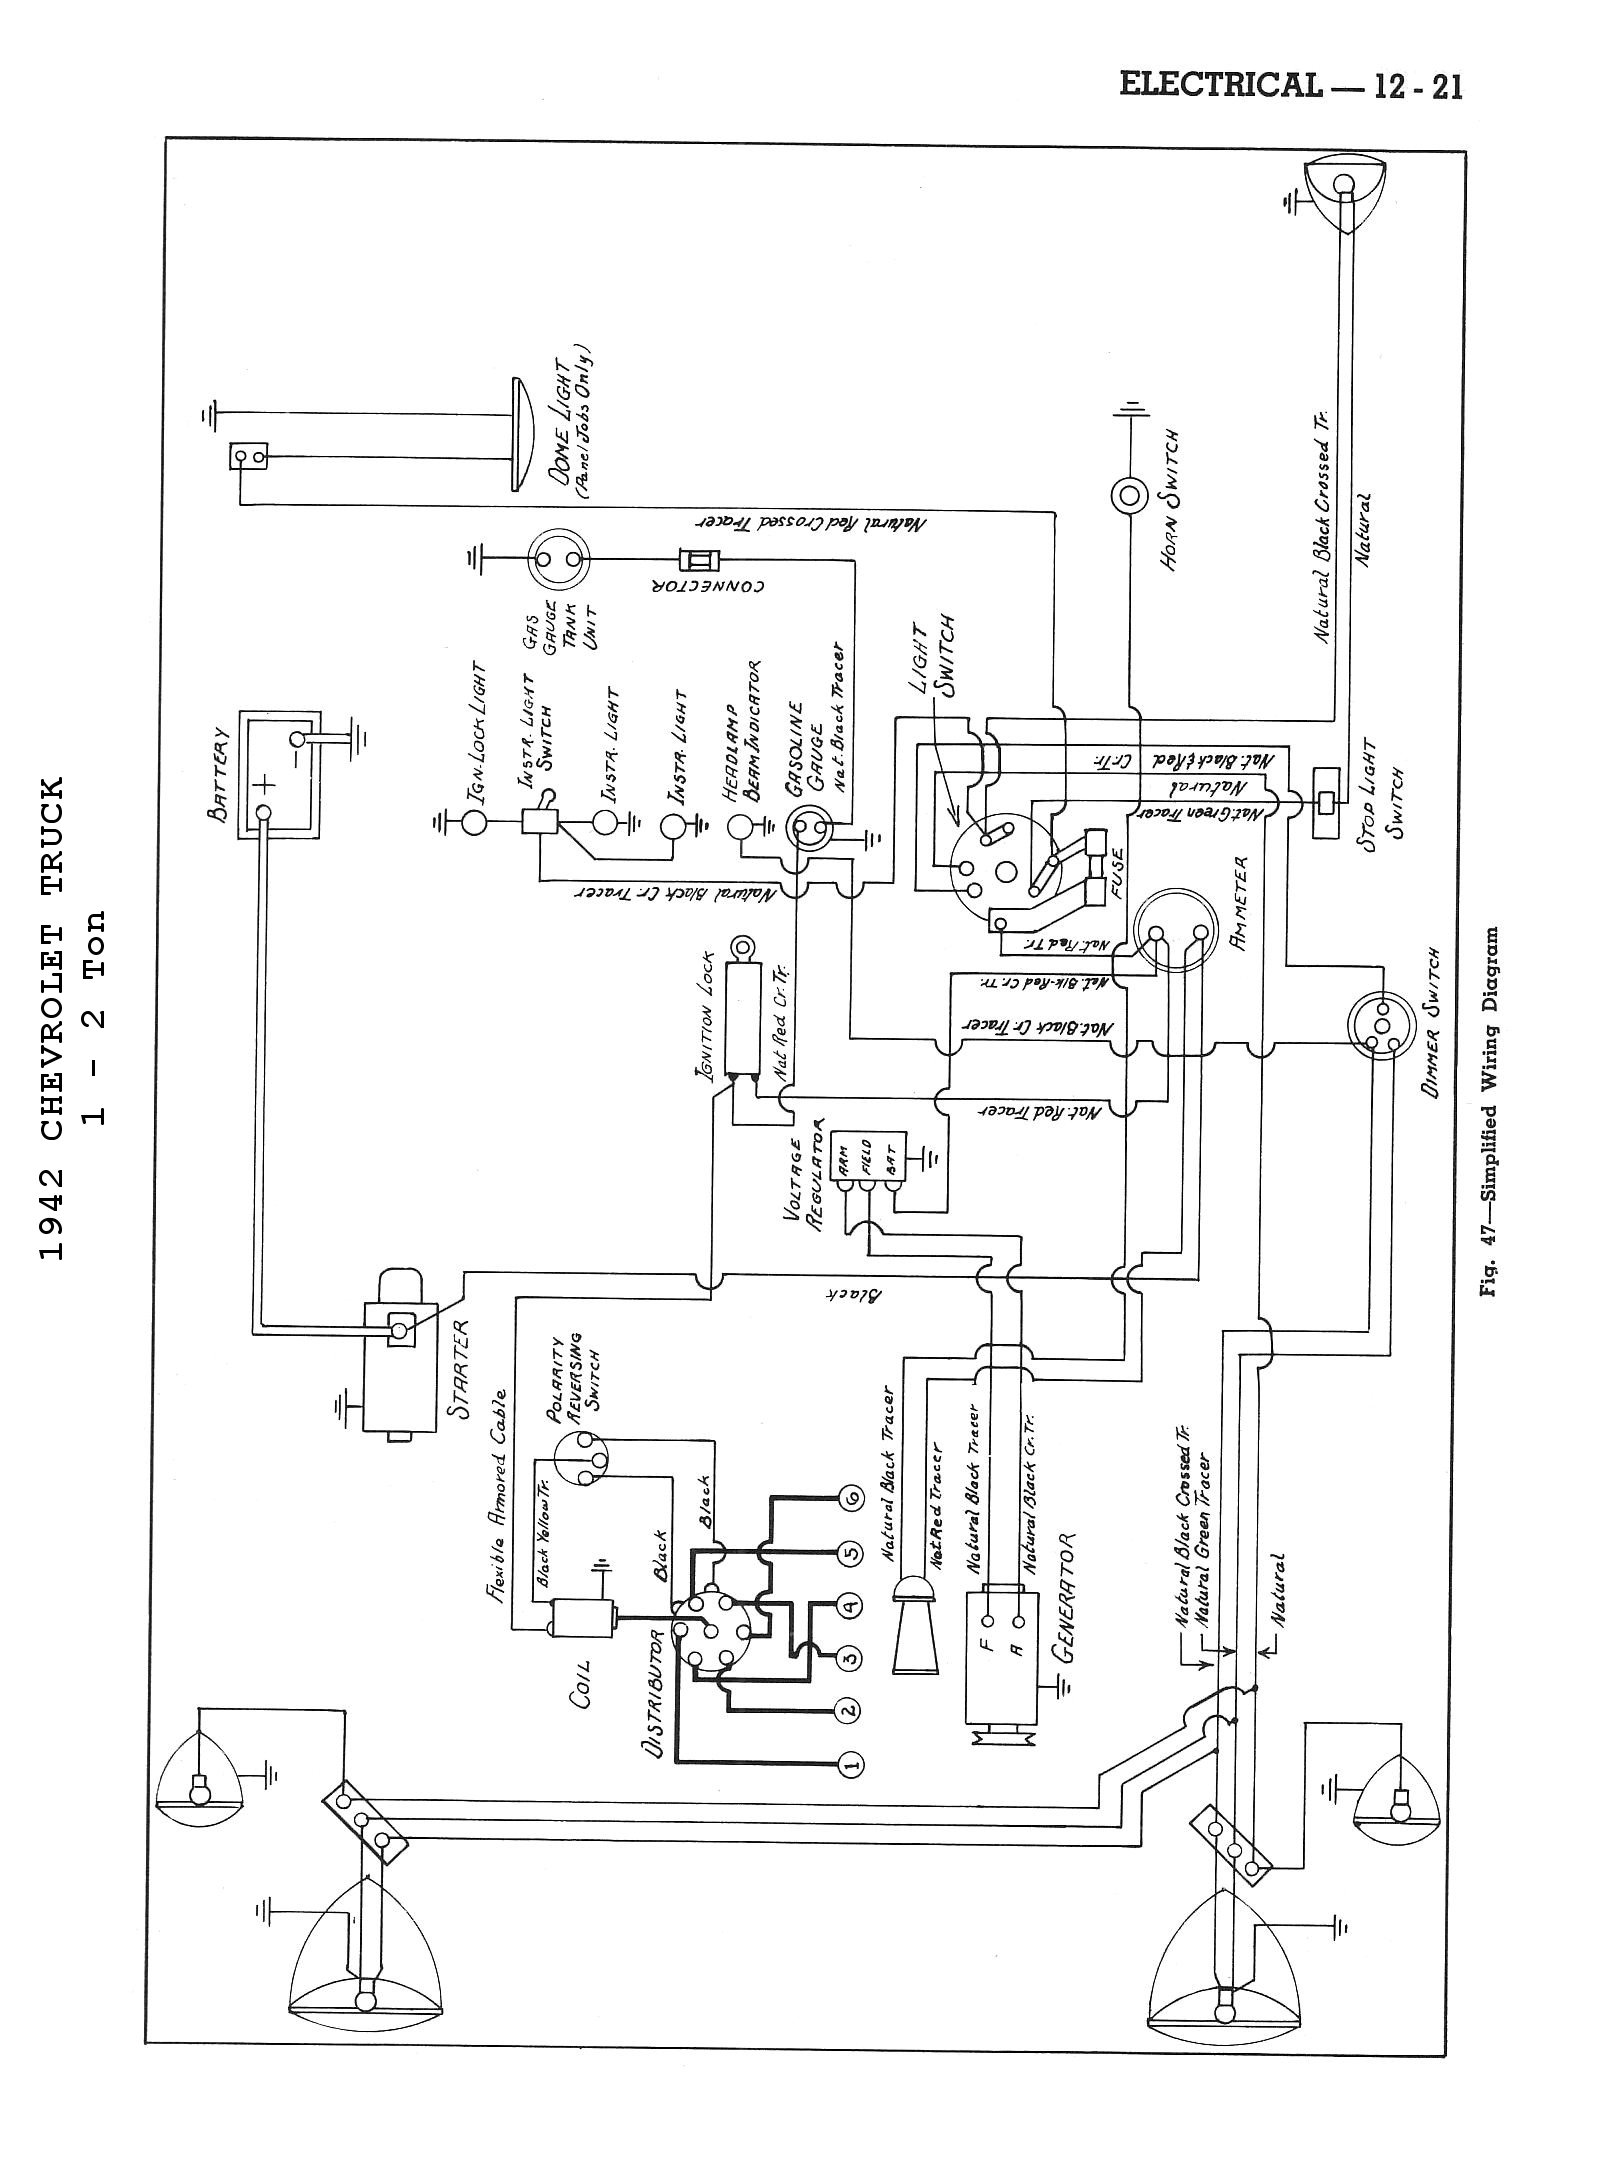 Chevy Radio Wiring Diagram on chevy pickup wiring diagram, 55 chevy headlight diagram, 55 chevy door diagram, 55 chevy steering wheel diagram, 55 chevy wiring schematics, 1955 chevy wiring diagram, 55 chevy ignition switch diagram, 55 chevy fuse panel diagram, 55 chevy car radio, 55 chevy turn signal wiring, 55 chevy power steering, 55 chevy heater diagram, 1959 chevy truck wiring diagram, 1978 chevy turn signal wiring diagram,